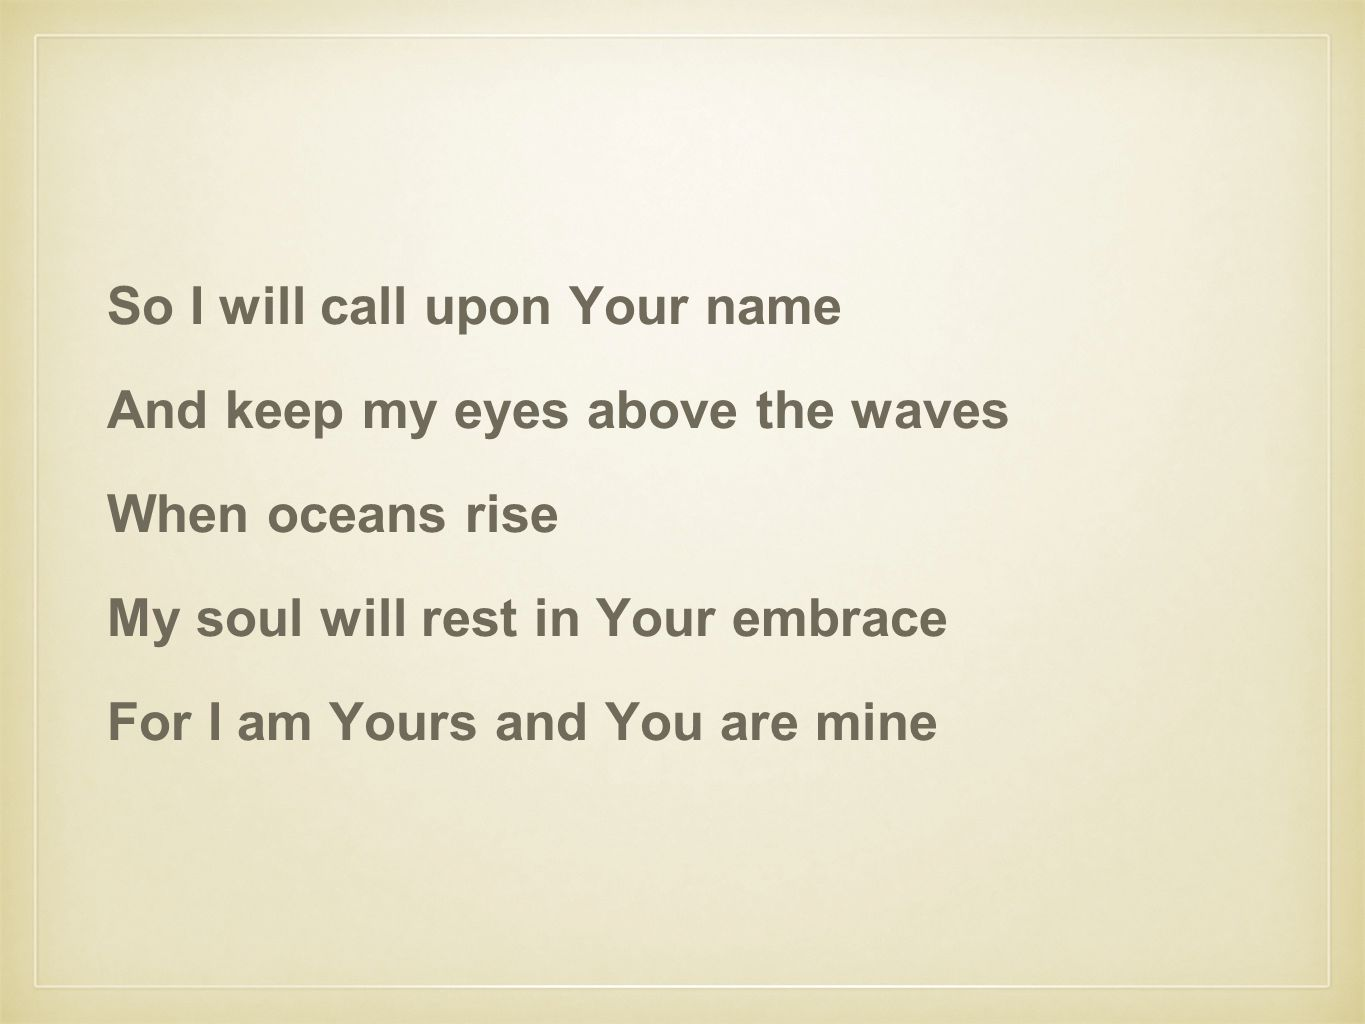 So I will call upon Your name And keep my eyes above the waves When oceans rise My soul will rest in Your embrace For I am Yours and You are mine